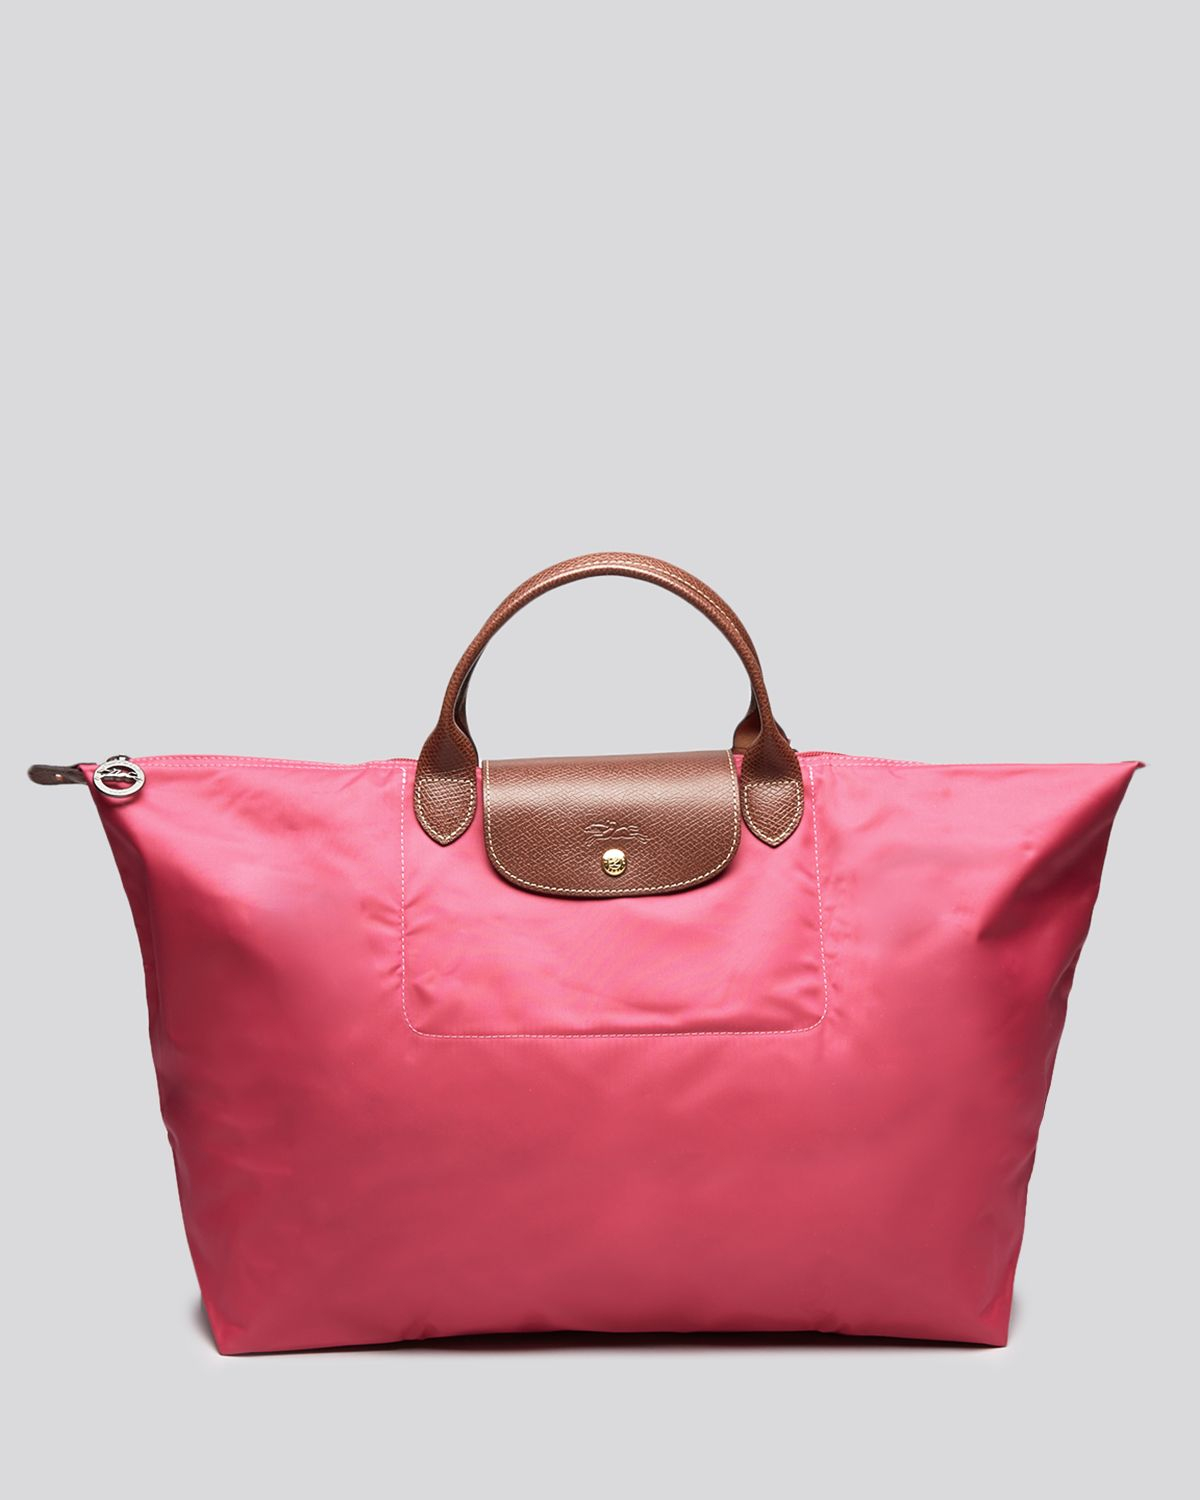 3801cccdcfff Lyst - Longchamp Le Pliage Travel Bag in Pink